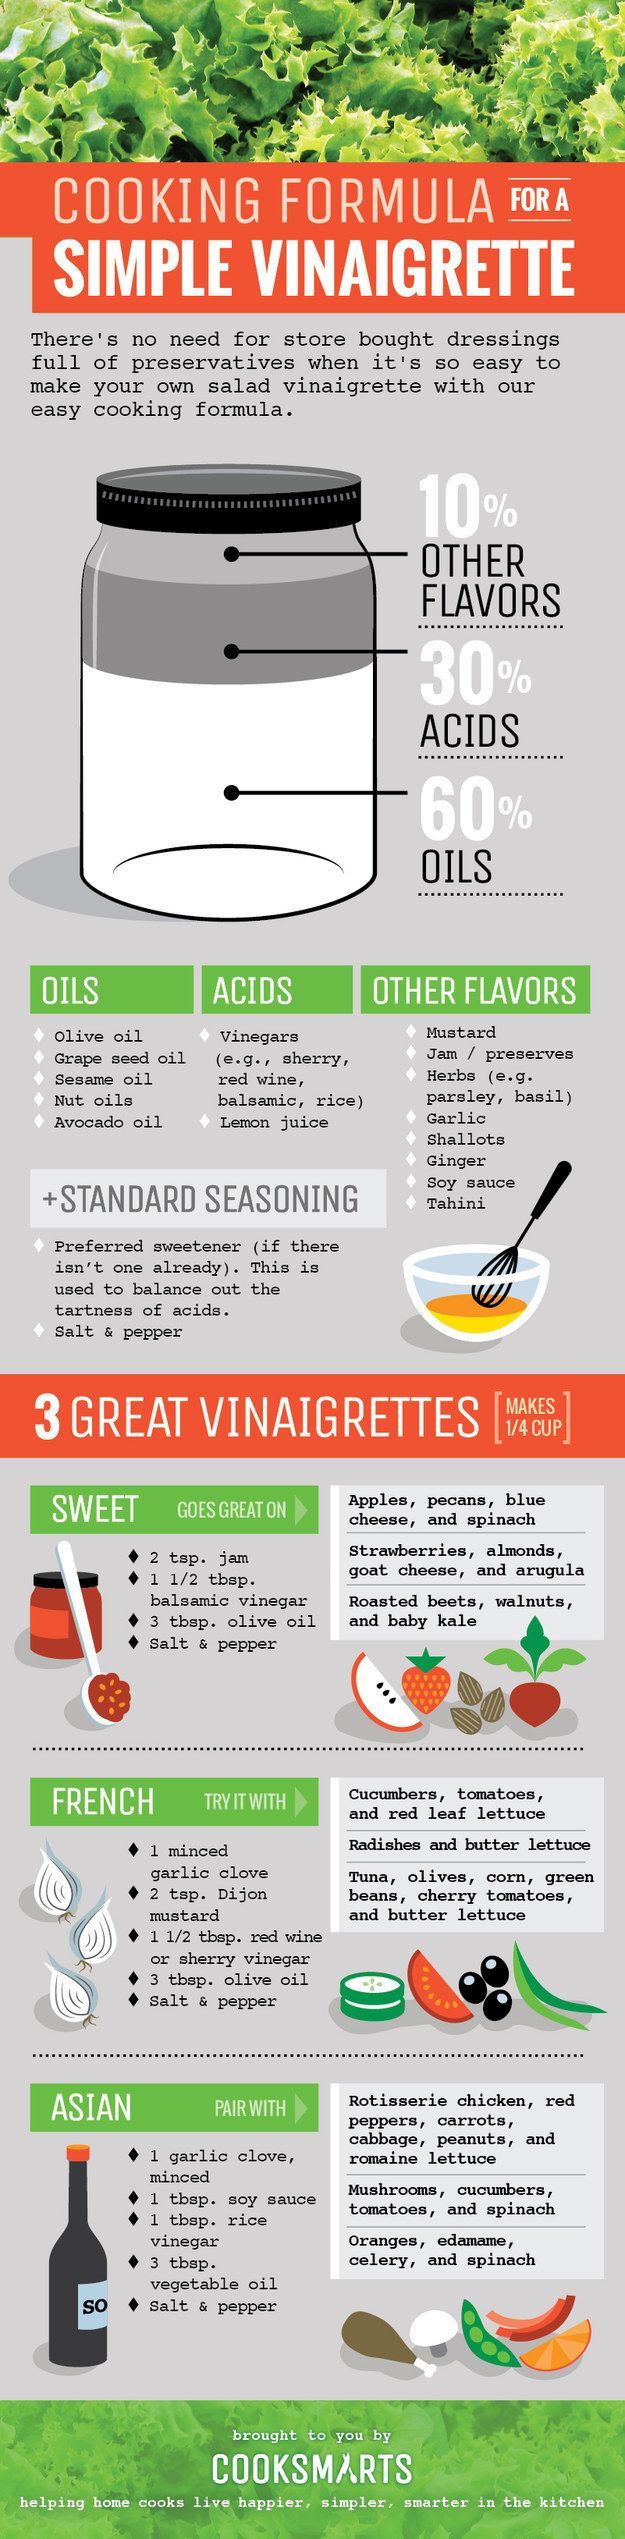 27 Beautiful Infographics that teach you how to cook - Imgur